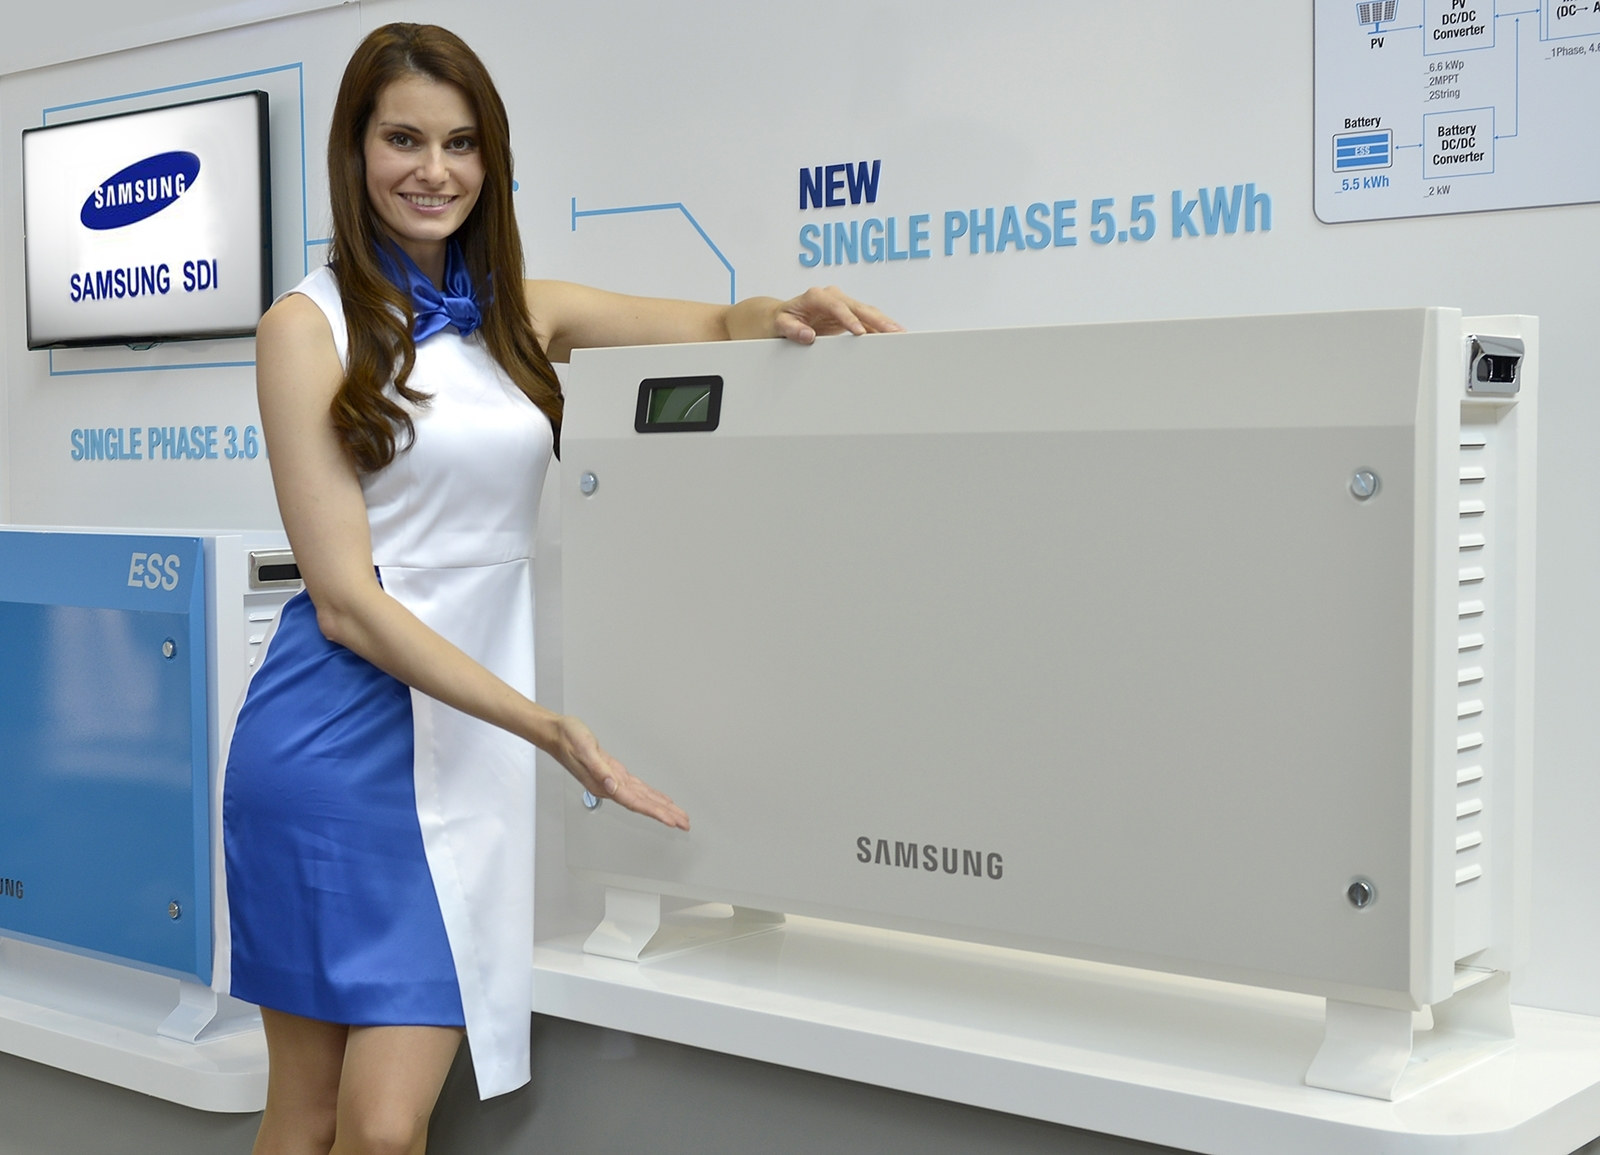 Samsung SDI Unveils New Energy Storage Products at Intersolar Europe